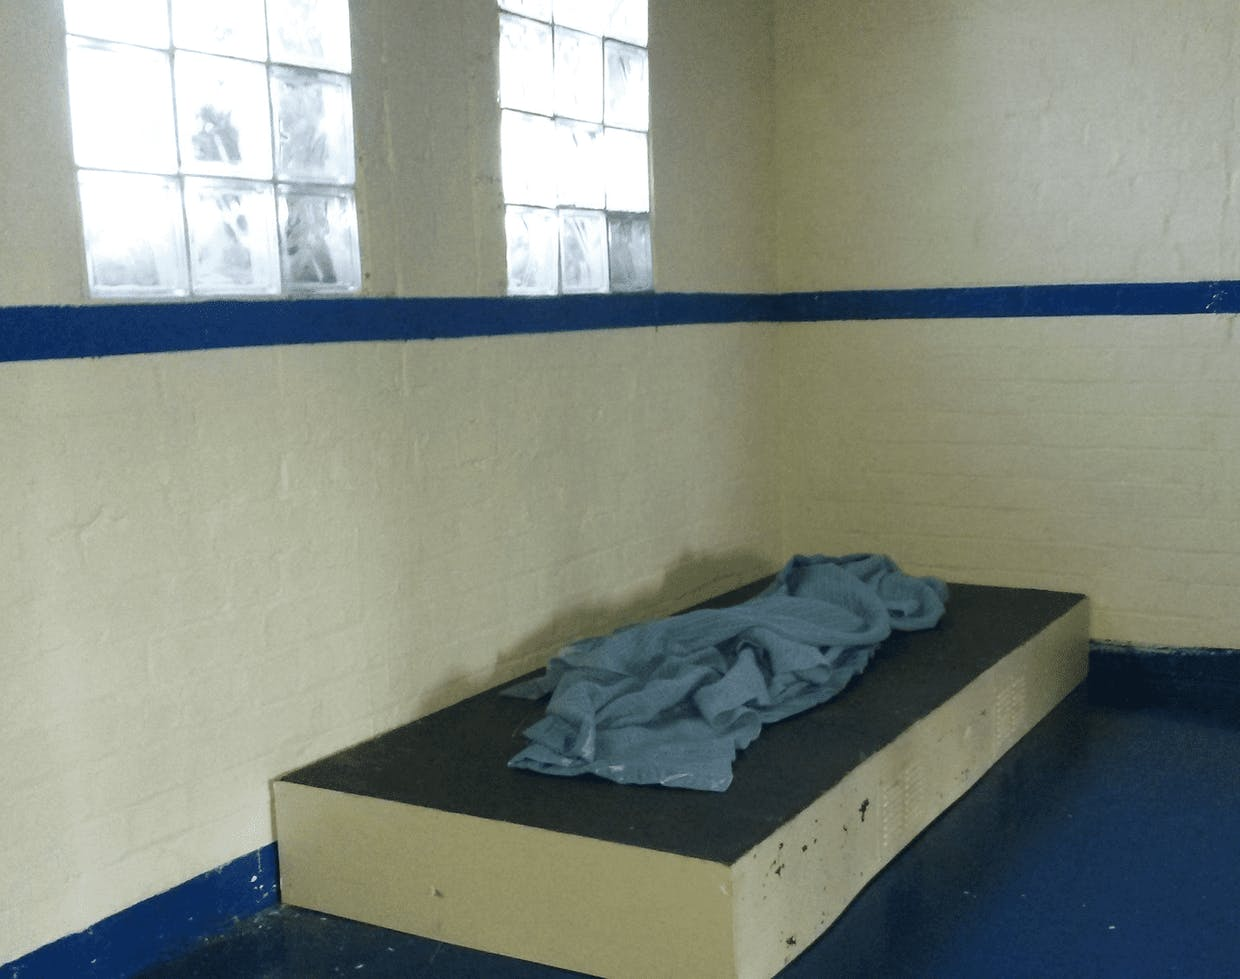 Police Cell Set